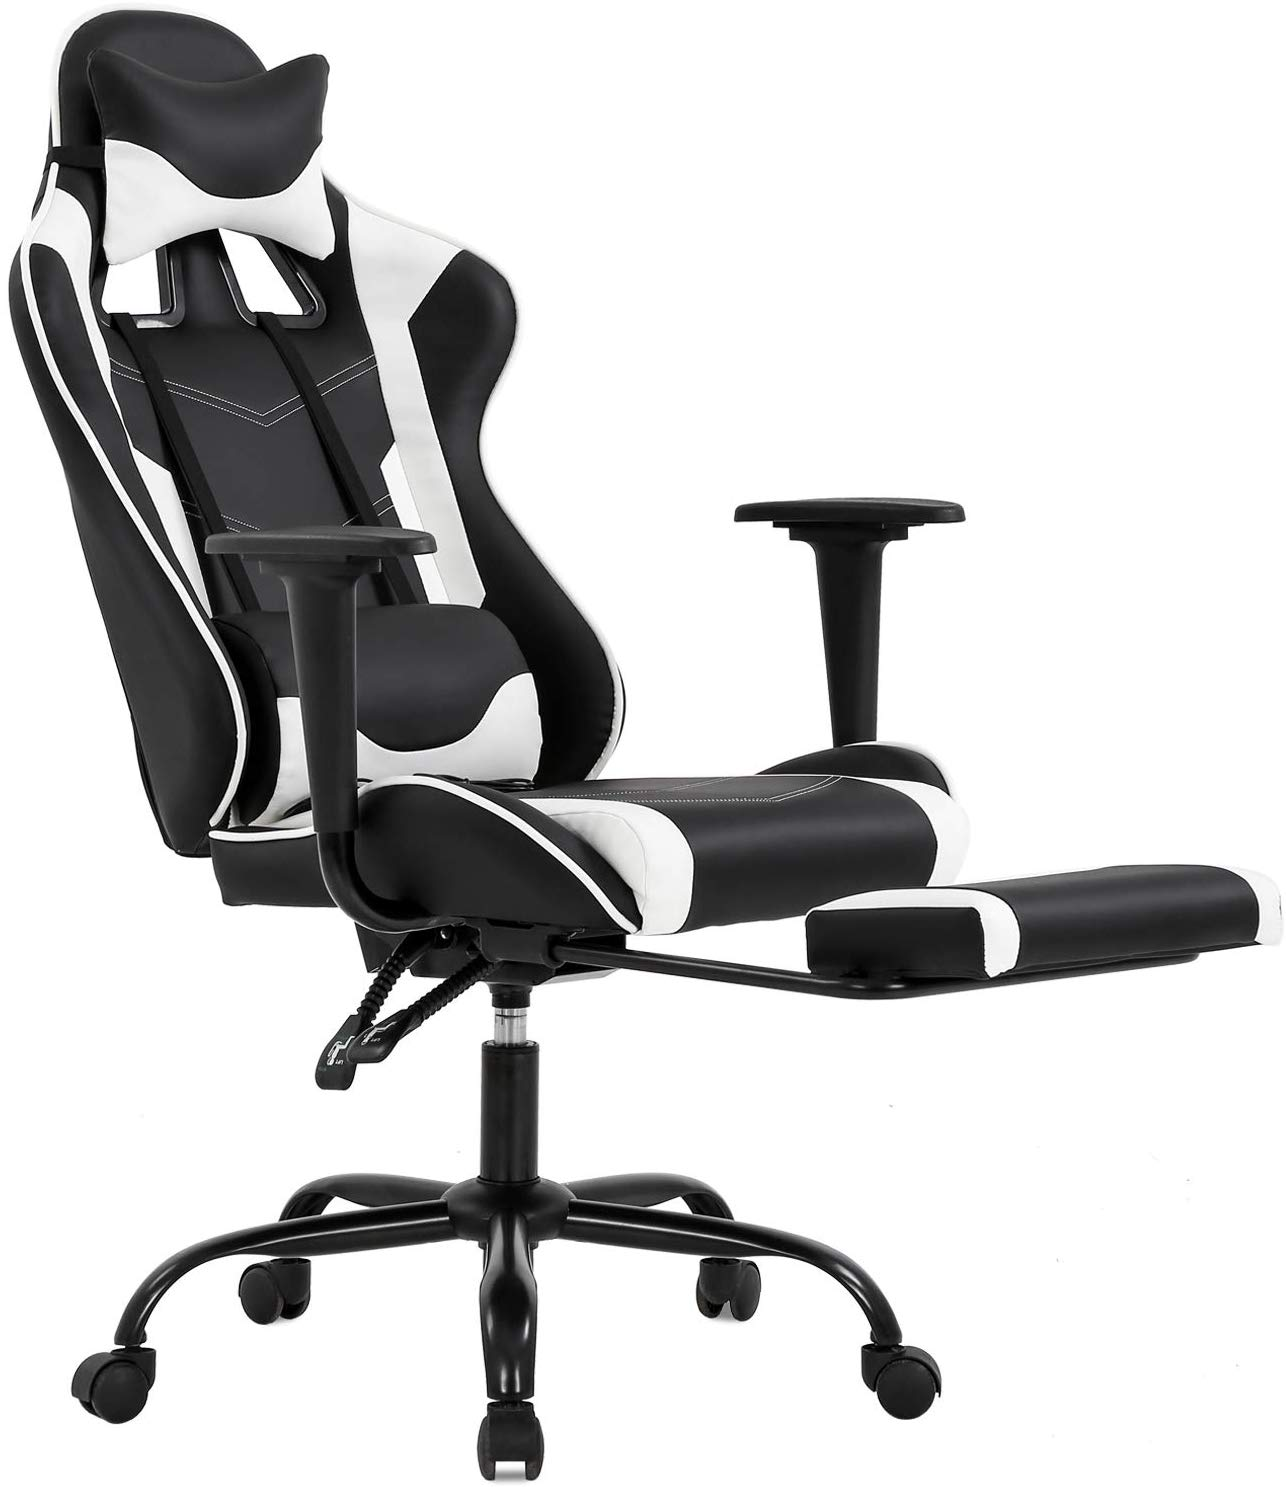 Picture of: Ergonomic Office Chair Pc Gaming Chair Desk Chair Executive Pu Leather Computer Chair Lumbar Support With Footrest Modern Task Rolling Swivel Chair For Adults White Walmart Canada